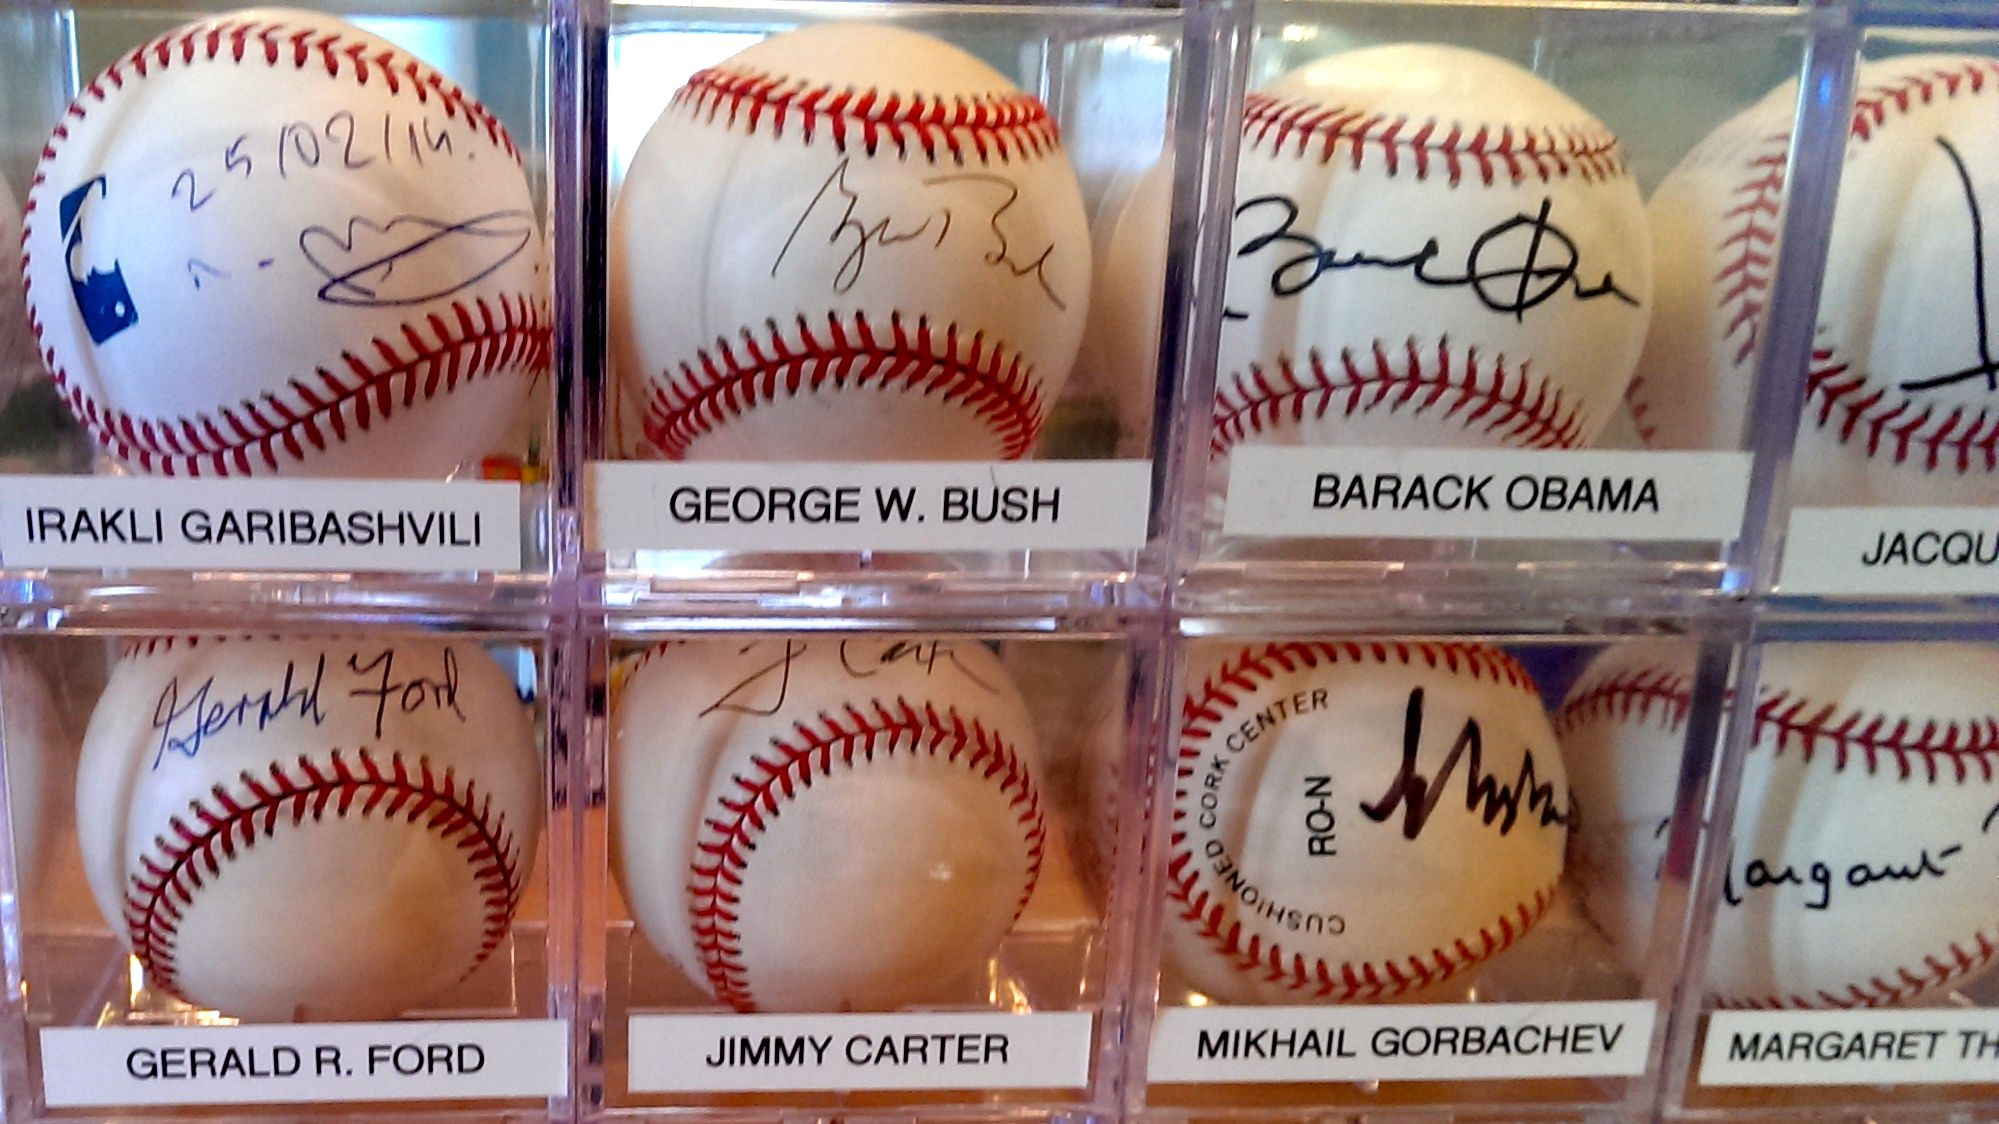 Some of the top names from the autograph collection of Randy Kaplan. He launched his collection in 1996, with the autograph of Bill Clinton, and has gathered 130 autographed baseballs to date.